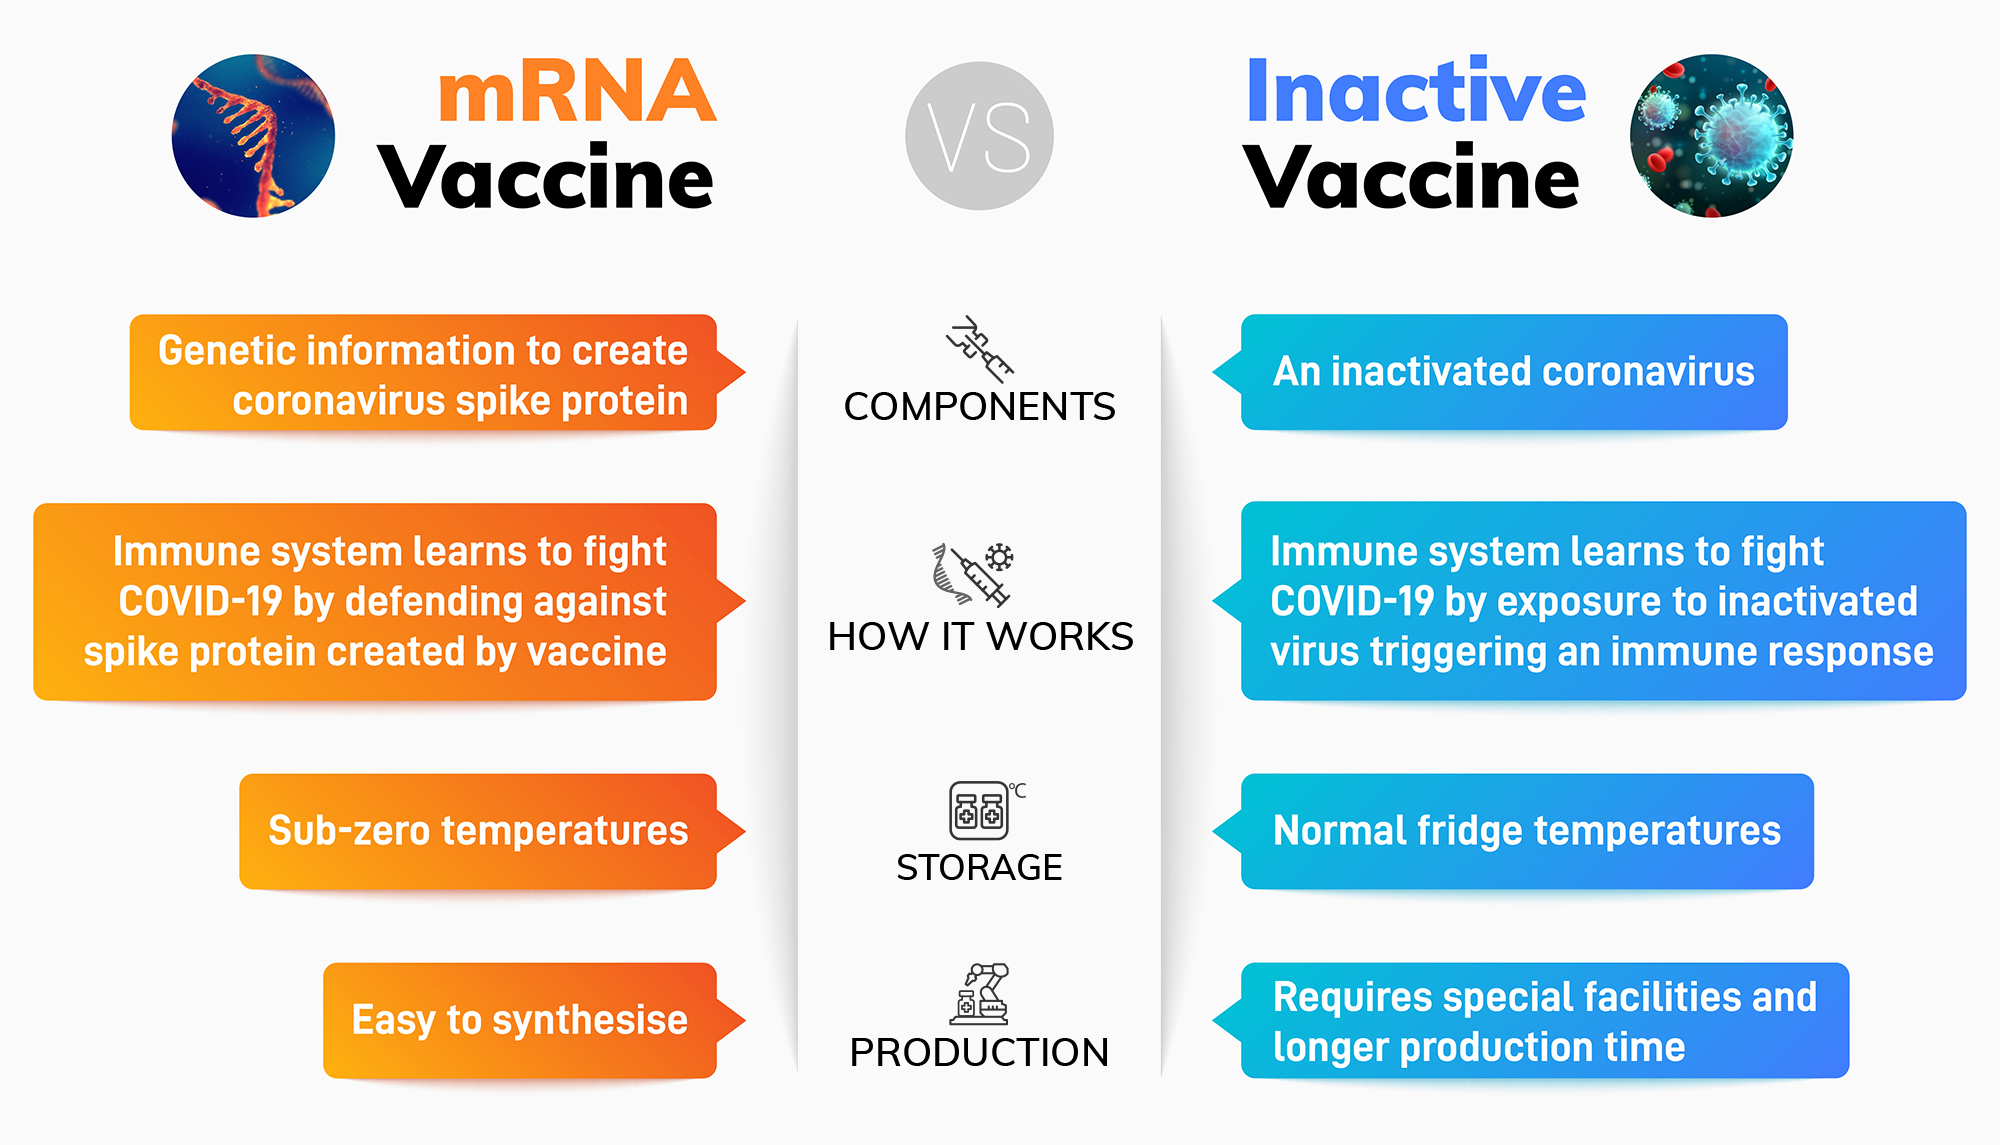 The differences between MRNA vaccines and Inactivated Vaccines